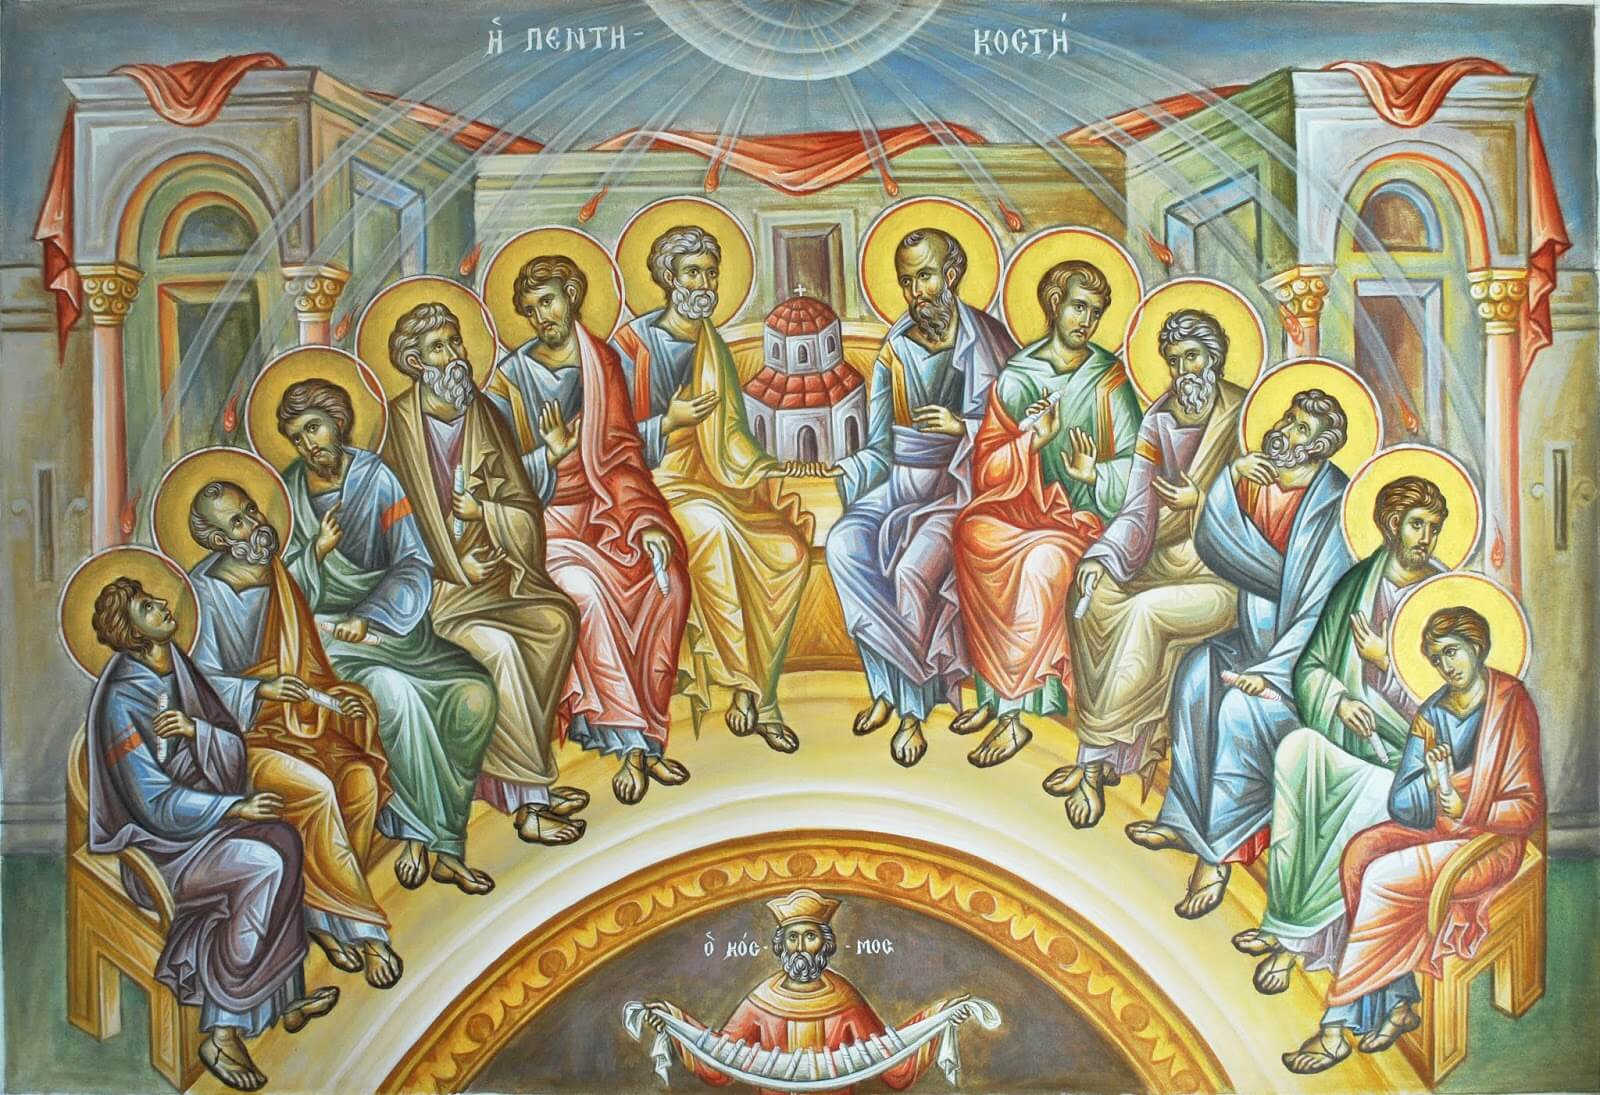 The Holy and Great Feast of Pentecost